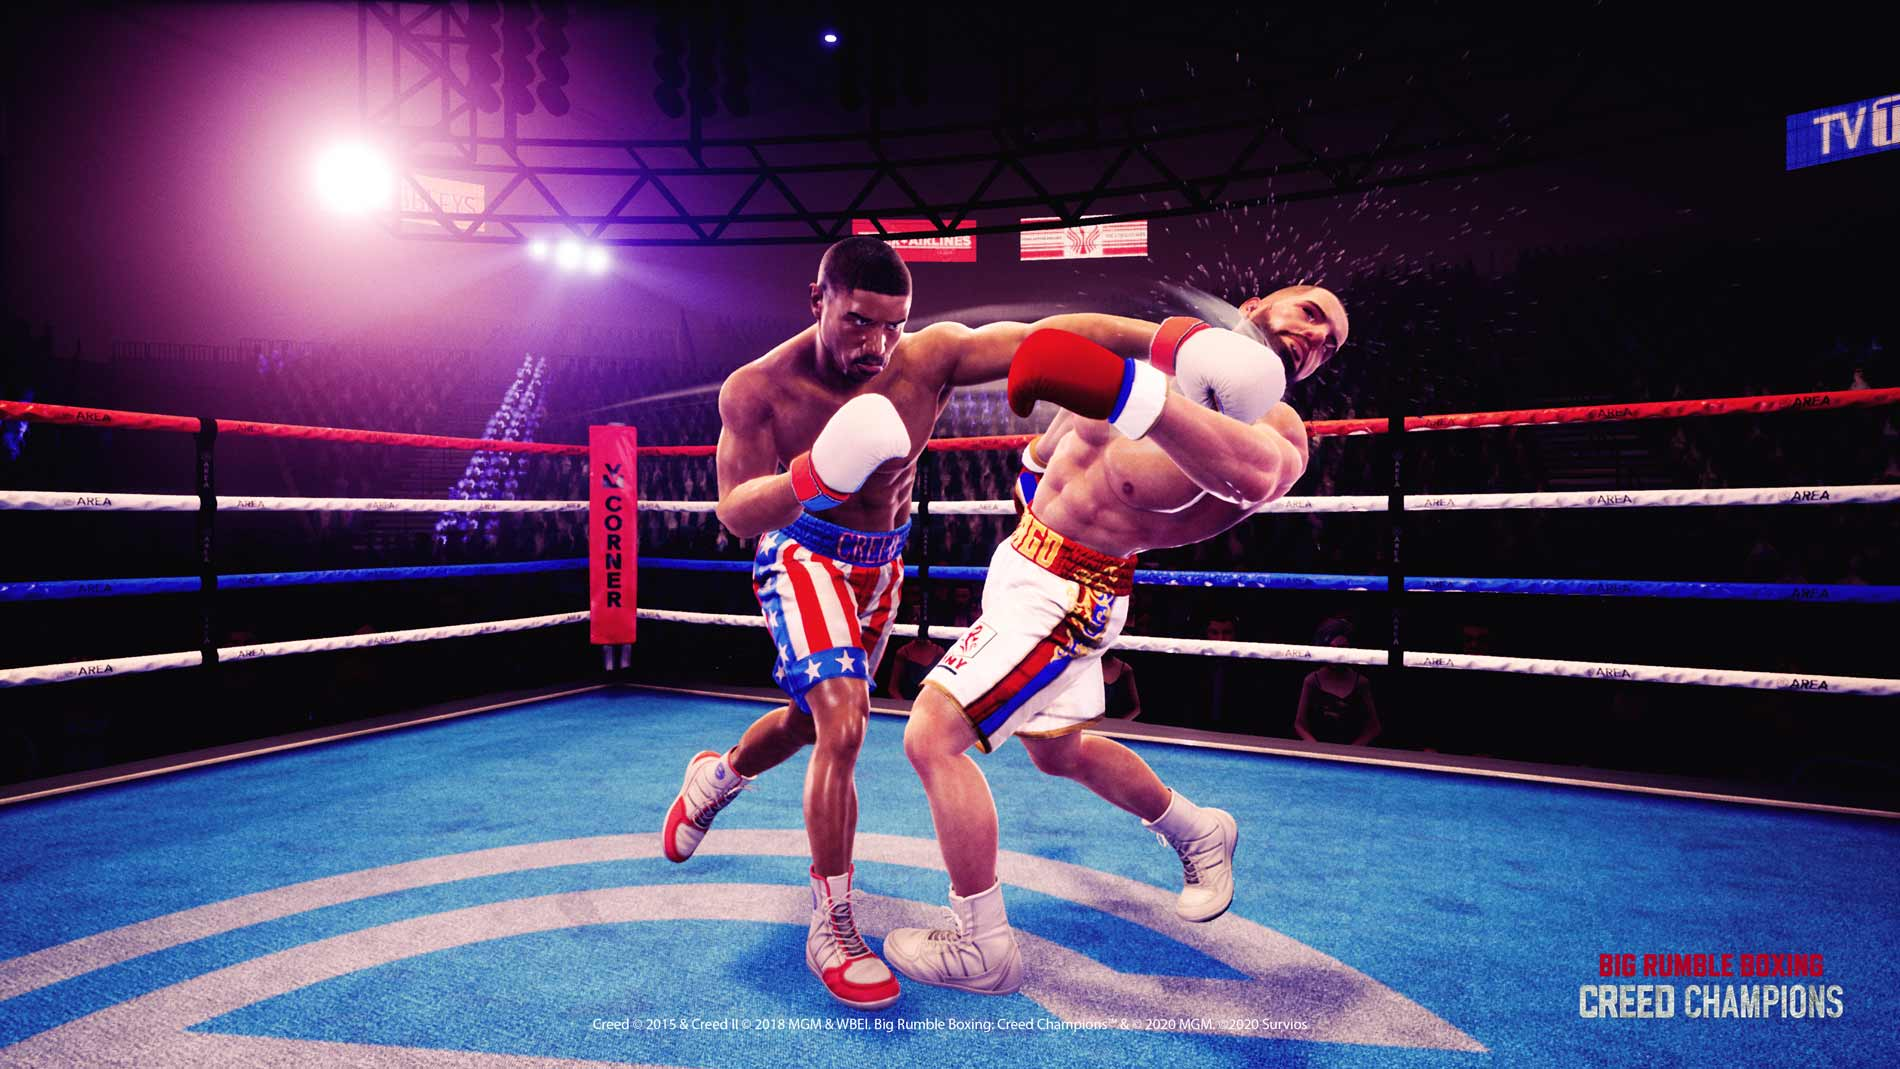 Big Rumble Boxing: Creed Champions announced for Switch, launching Spring 2021